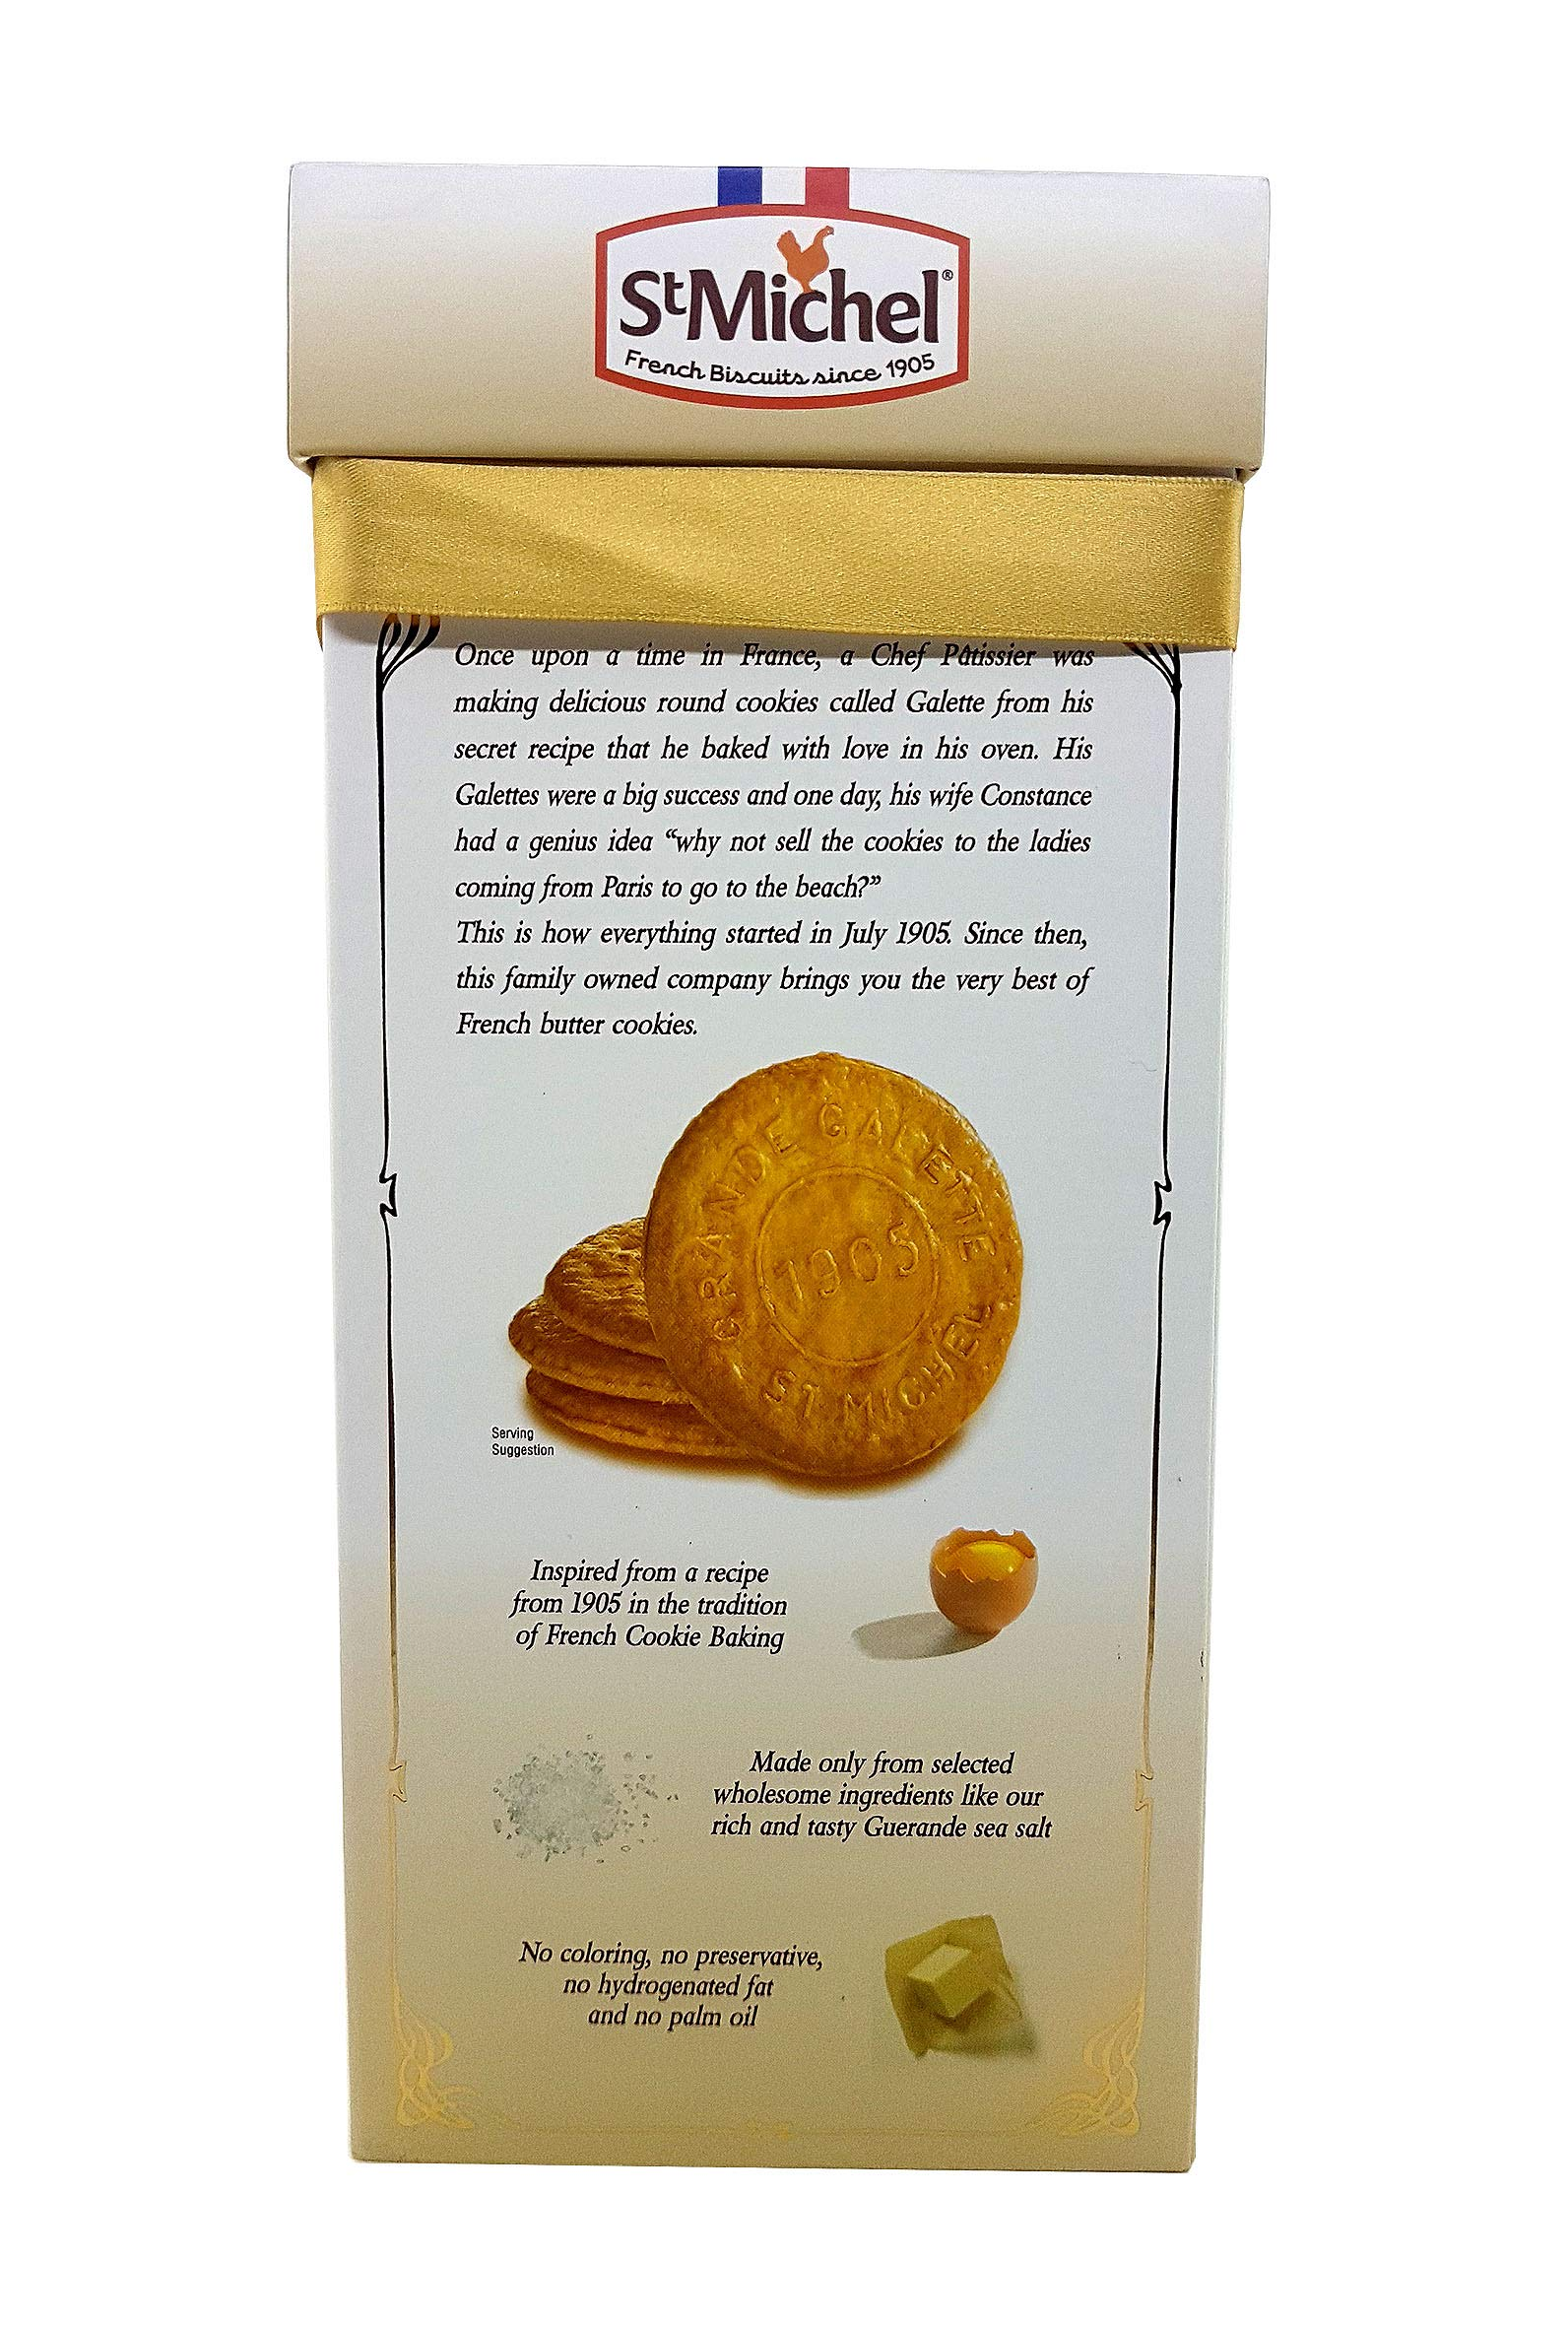 St Michel La Grande Galette French Butter Cookies Biscuits 1.3 LB (Pack of 2) by St Michel (Image #4)